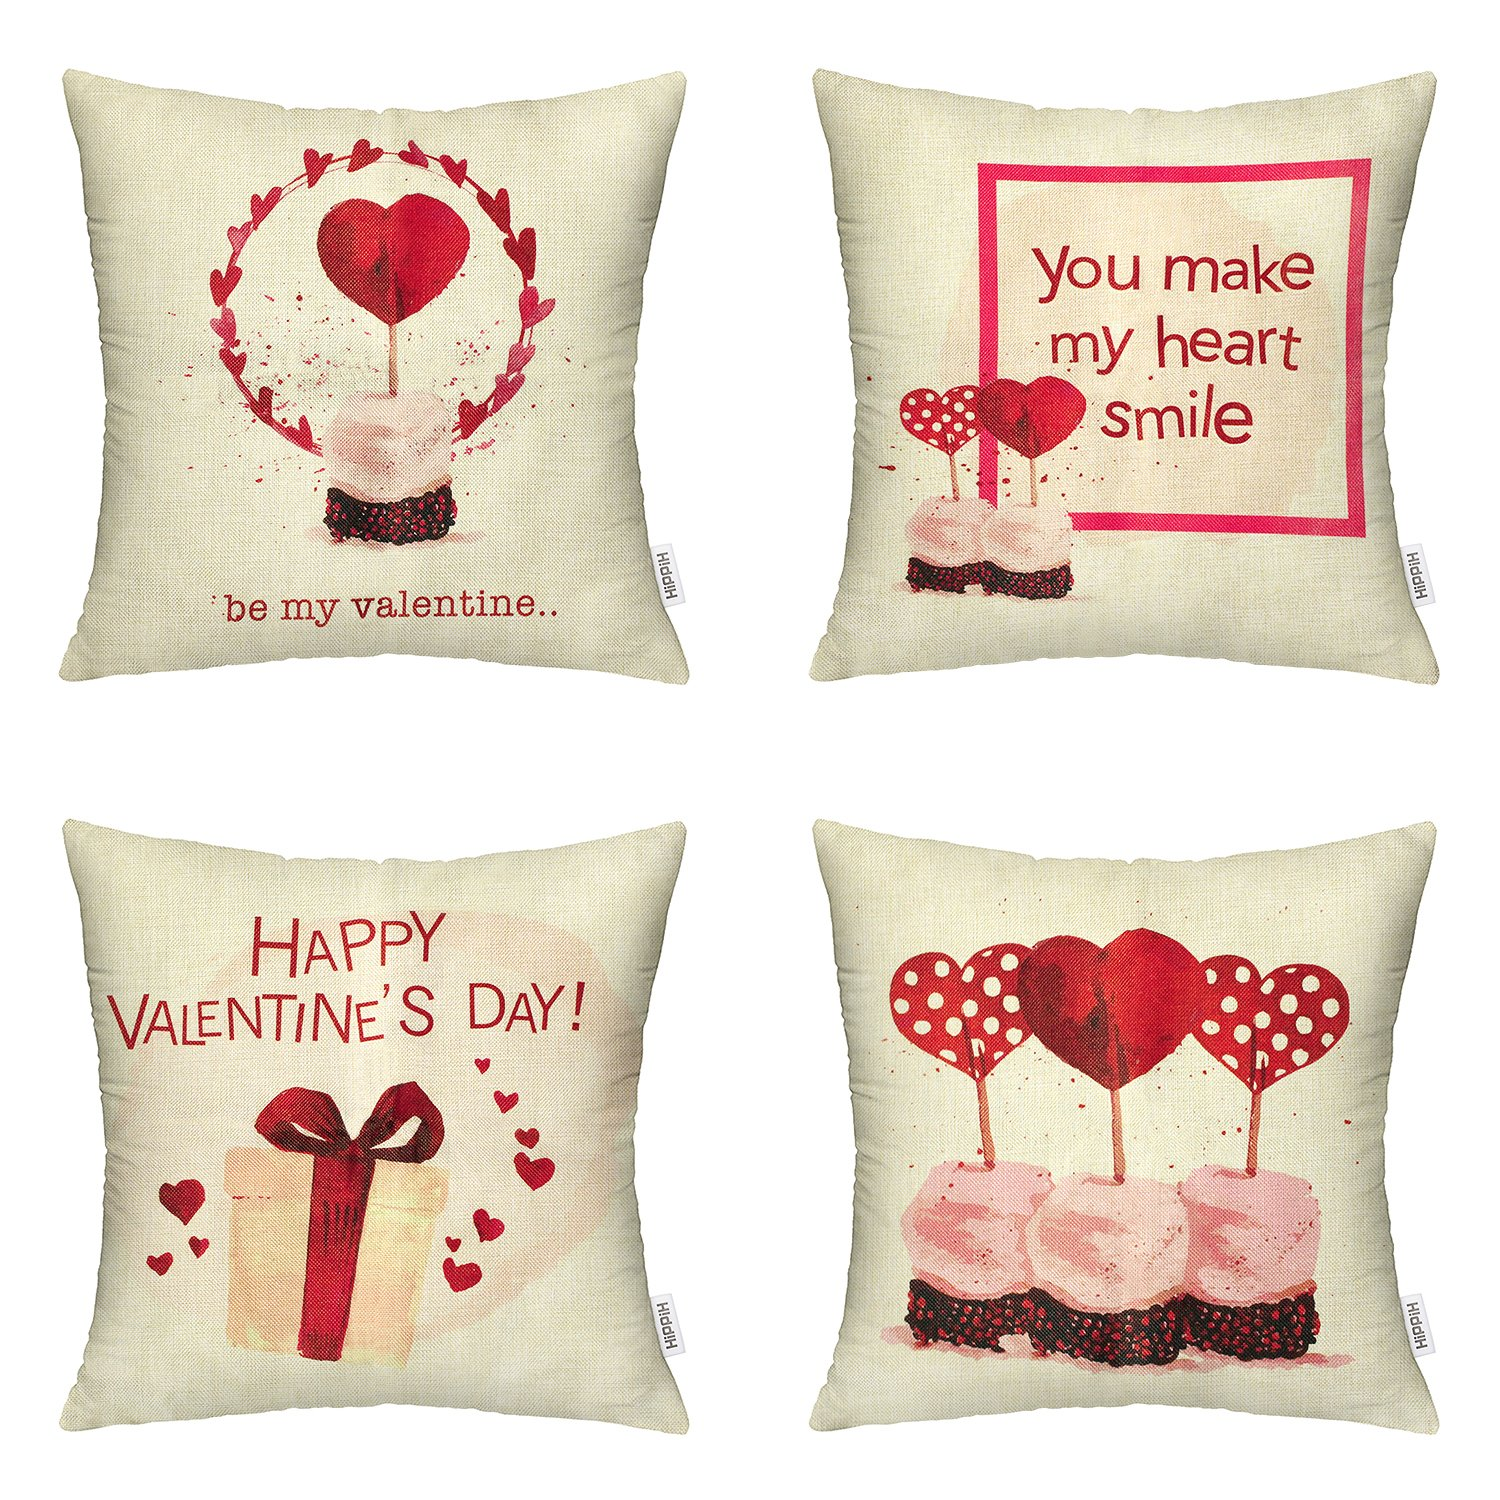 Valentine's Day Pillow Cover $...